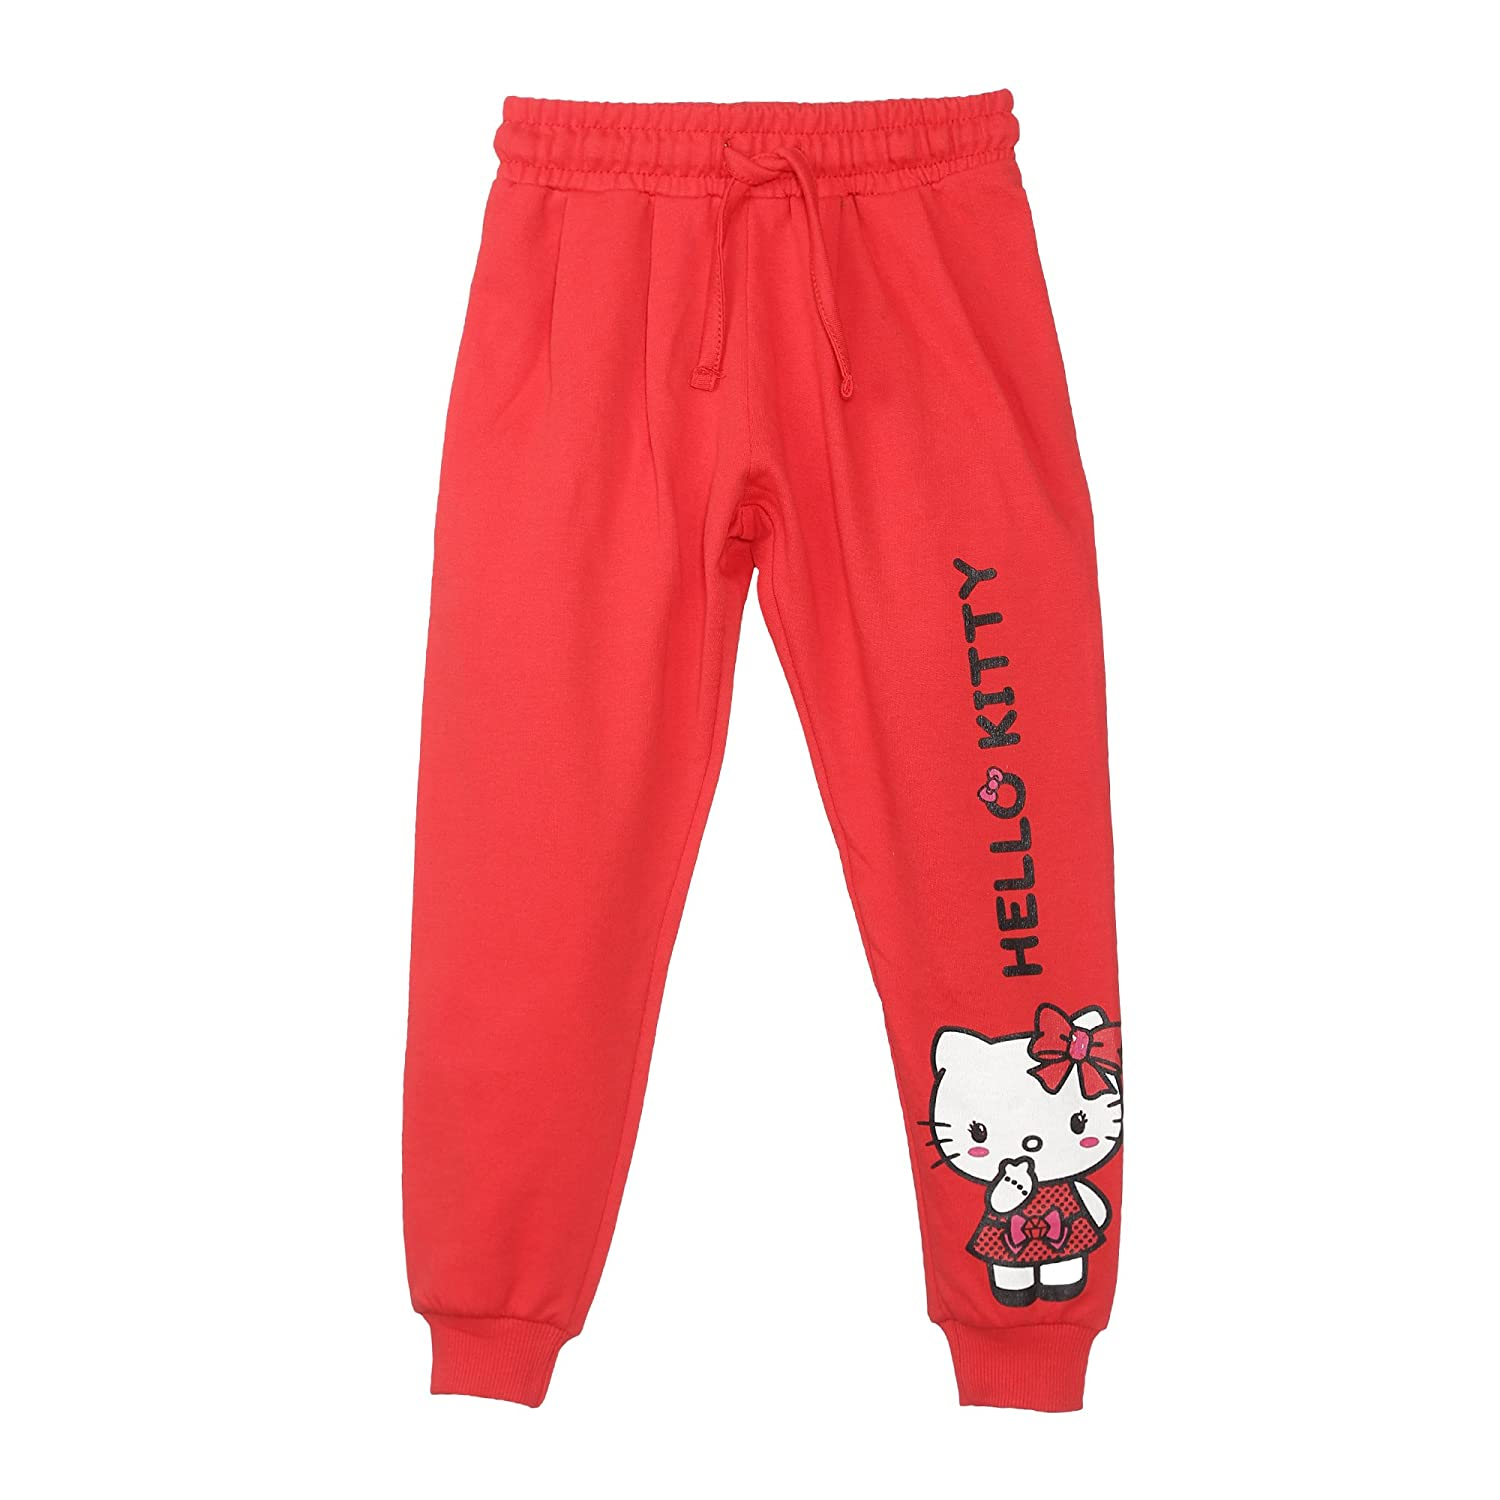 6c34ae618 Hello Kitty Girls' Relaxed Regular Fit Cotton Trousers: Amazon.in: Clothing  & Accessories